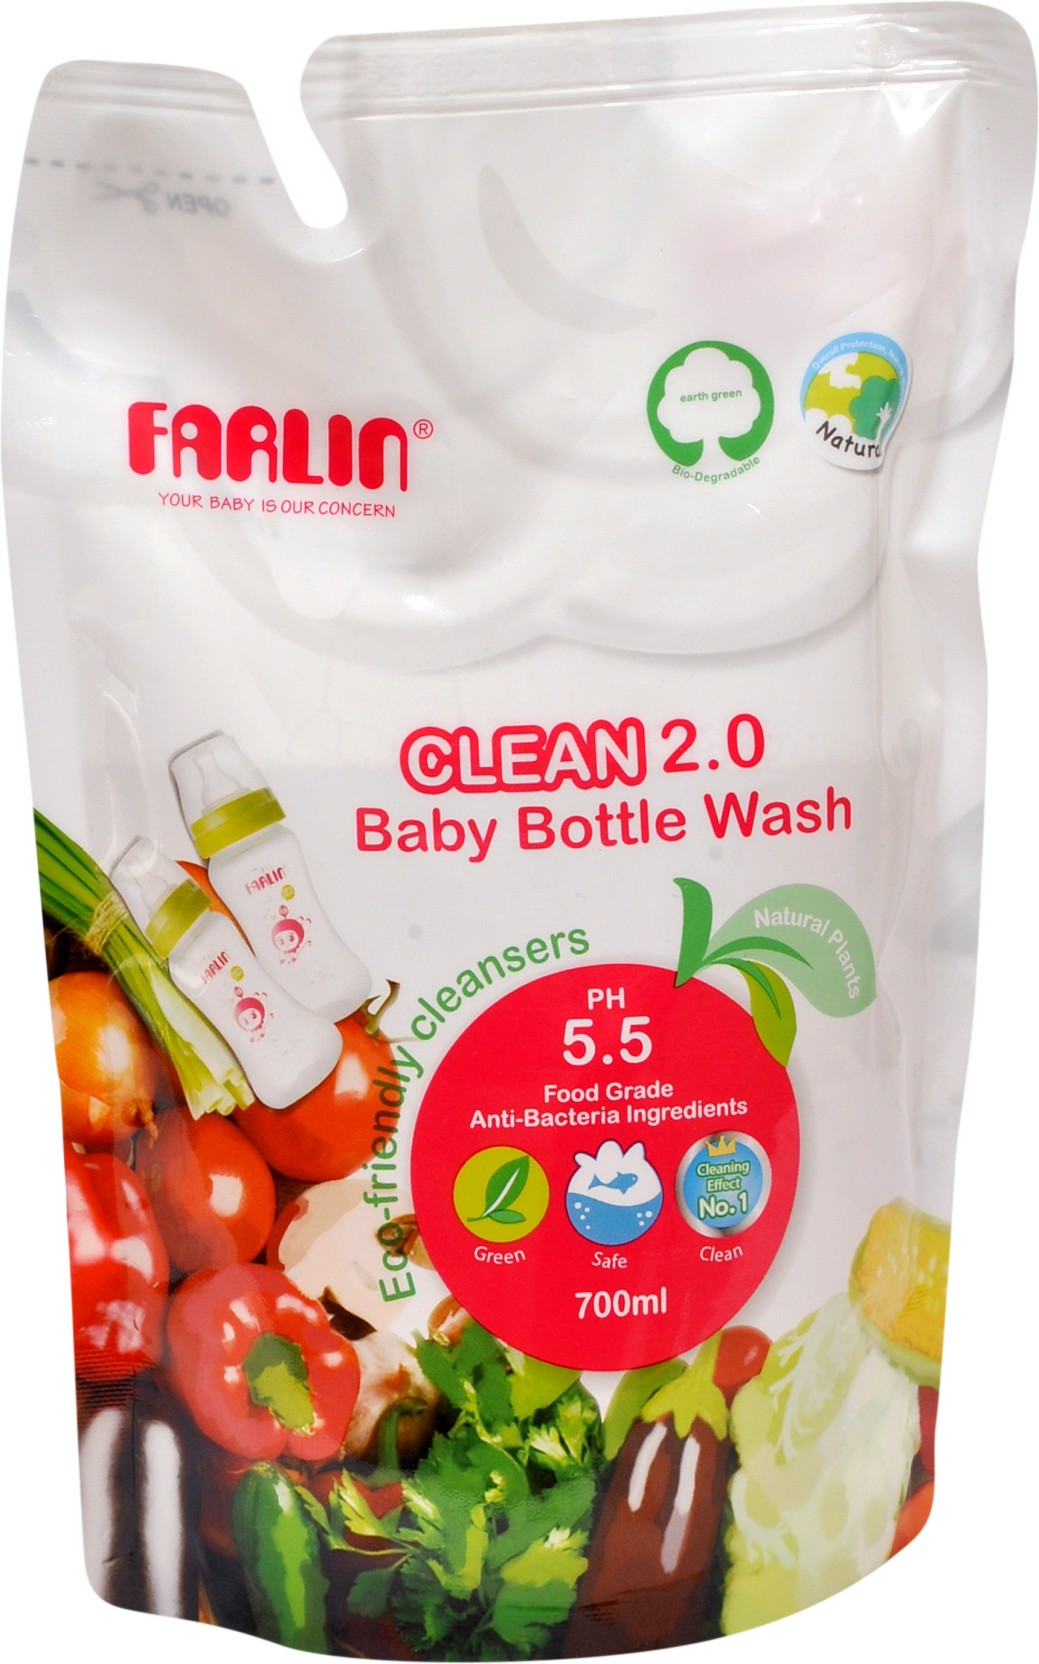 Farlin White Liquid Cleanser Buy Baby Care Products In India Pure Laundry Refill 2 Get 3 700 Ml Natural Add To Cart Now